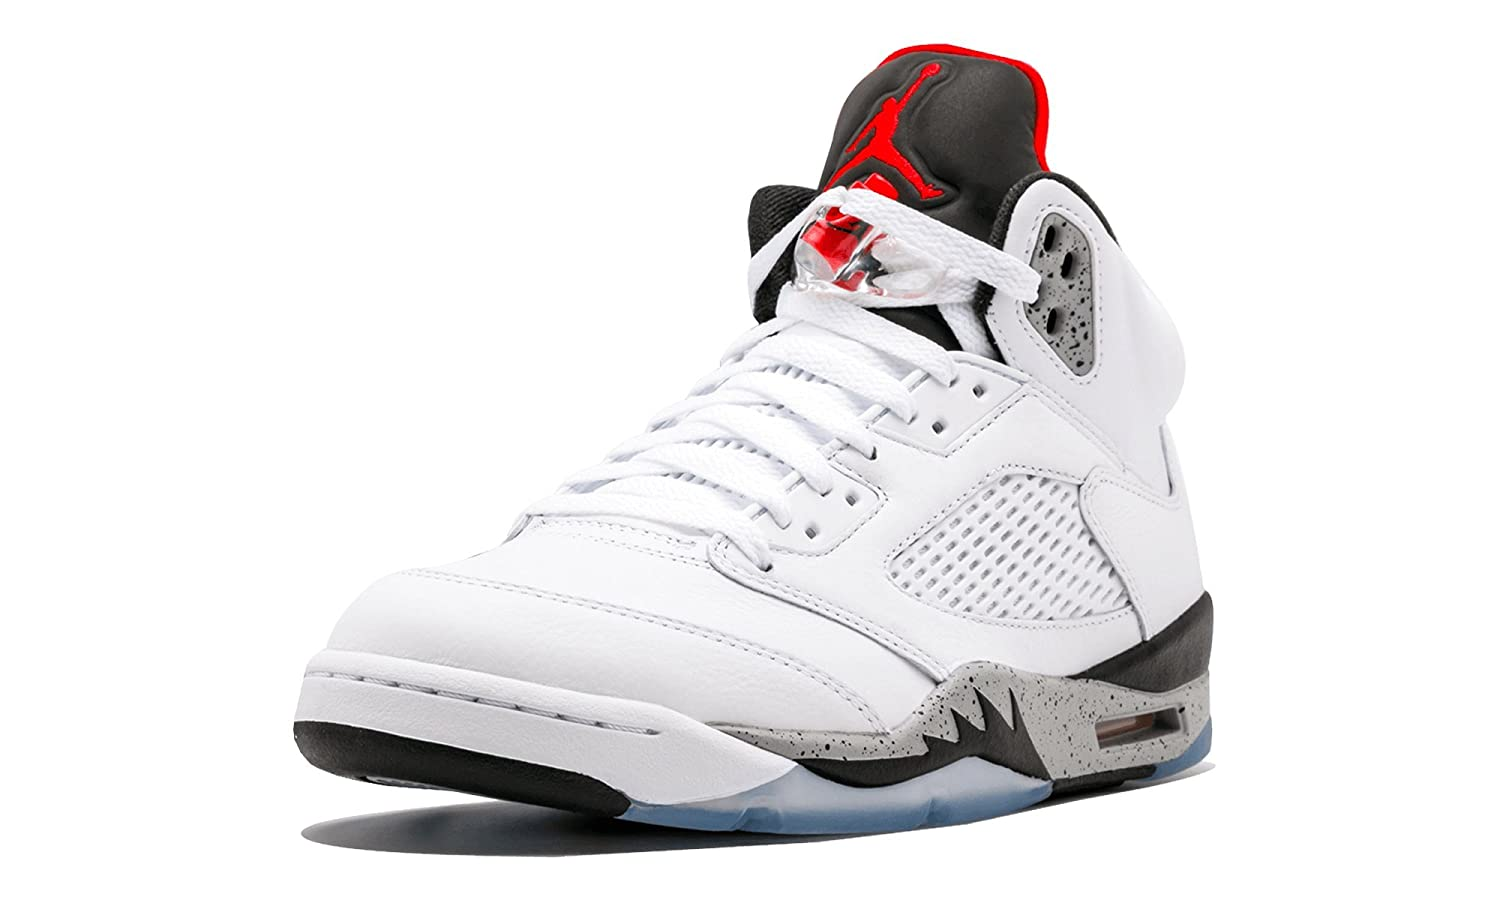 White University Red-black Nike Men's Air Jordan 5 Retro Basketball shoes